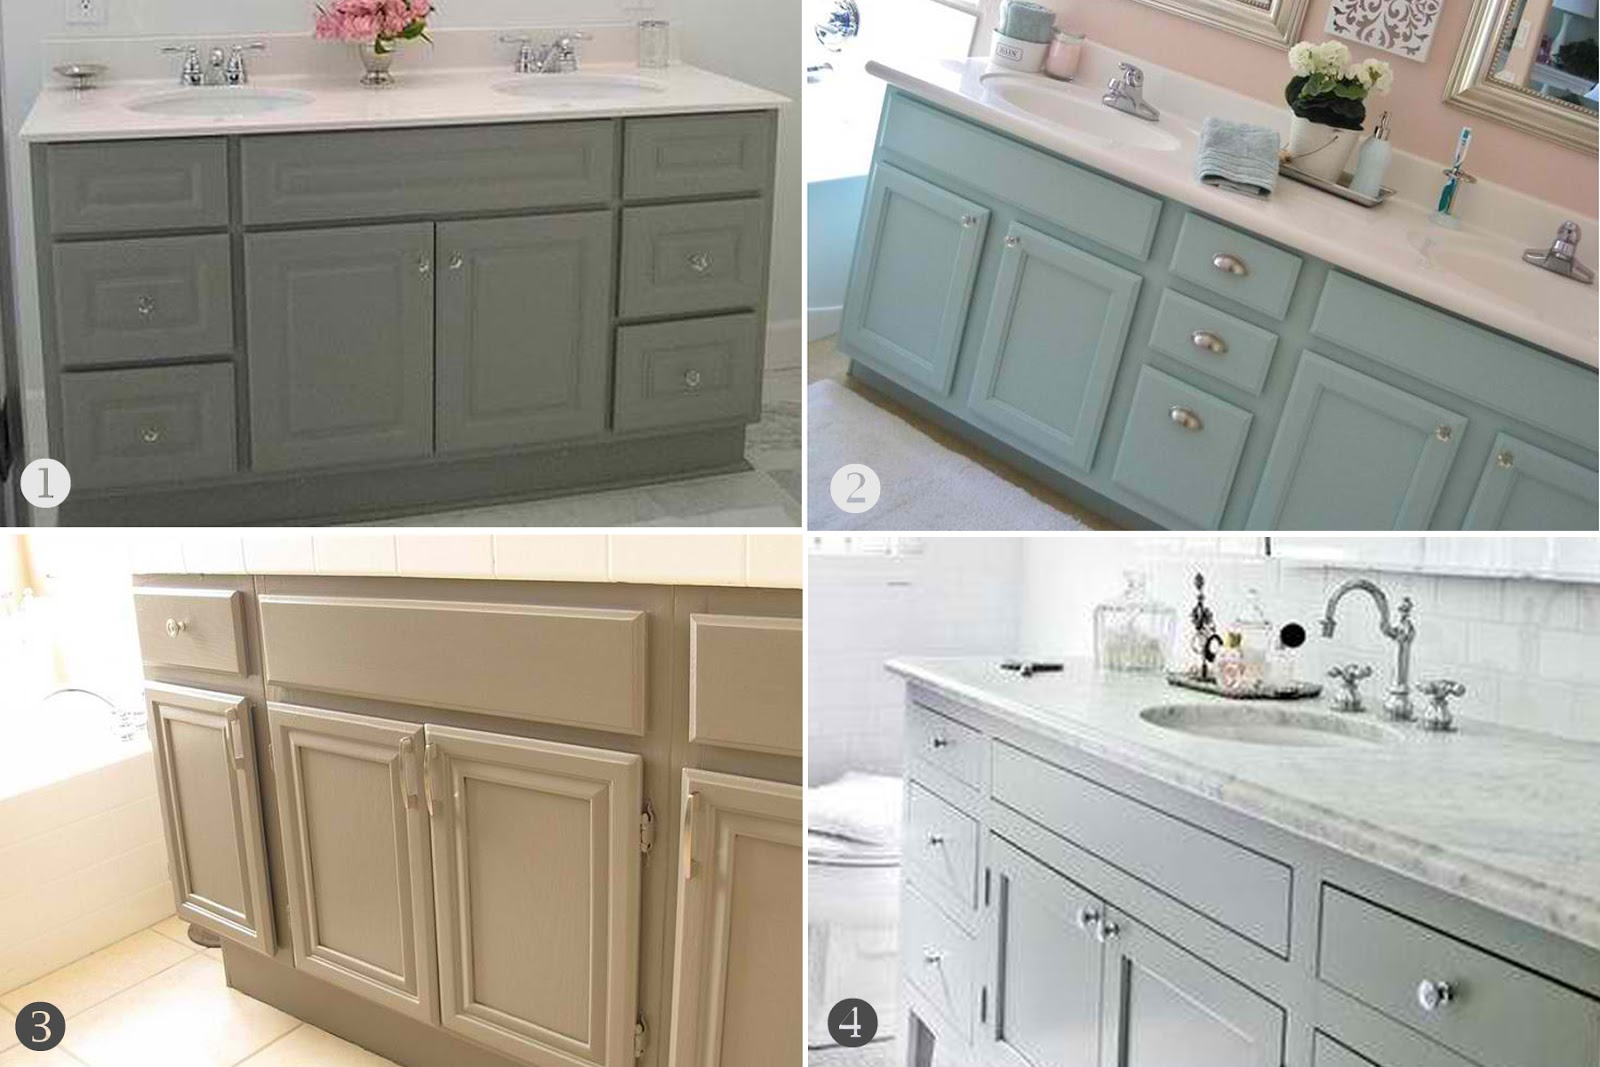 Inspired Honey Bee: home: bathroom cabinets upgrade